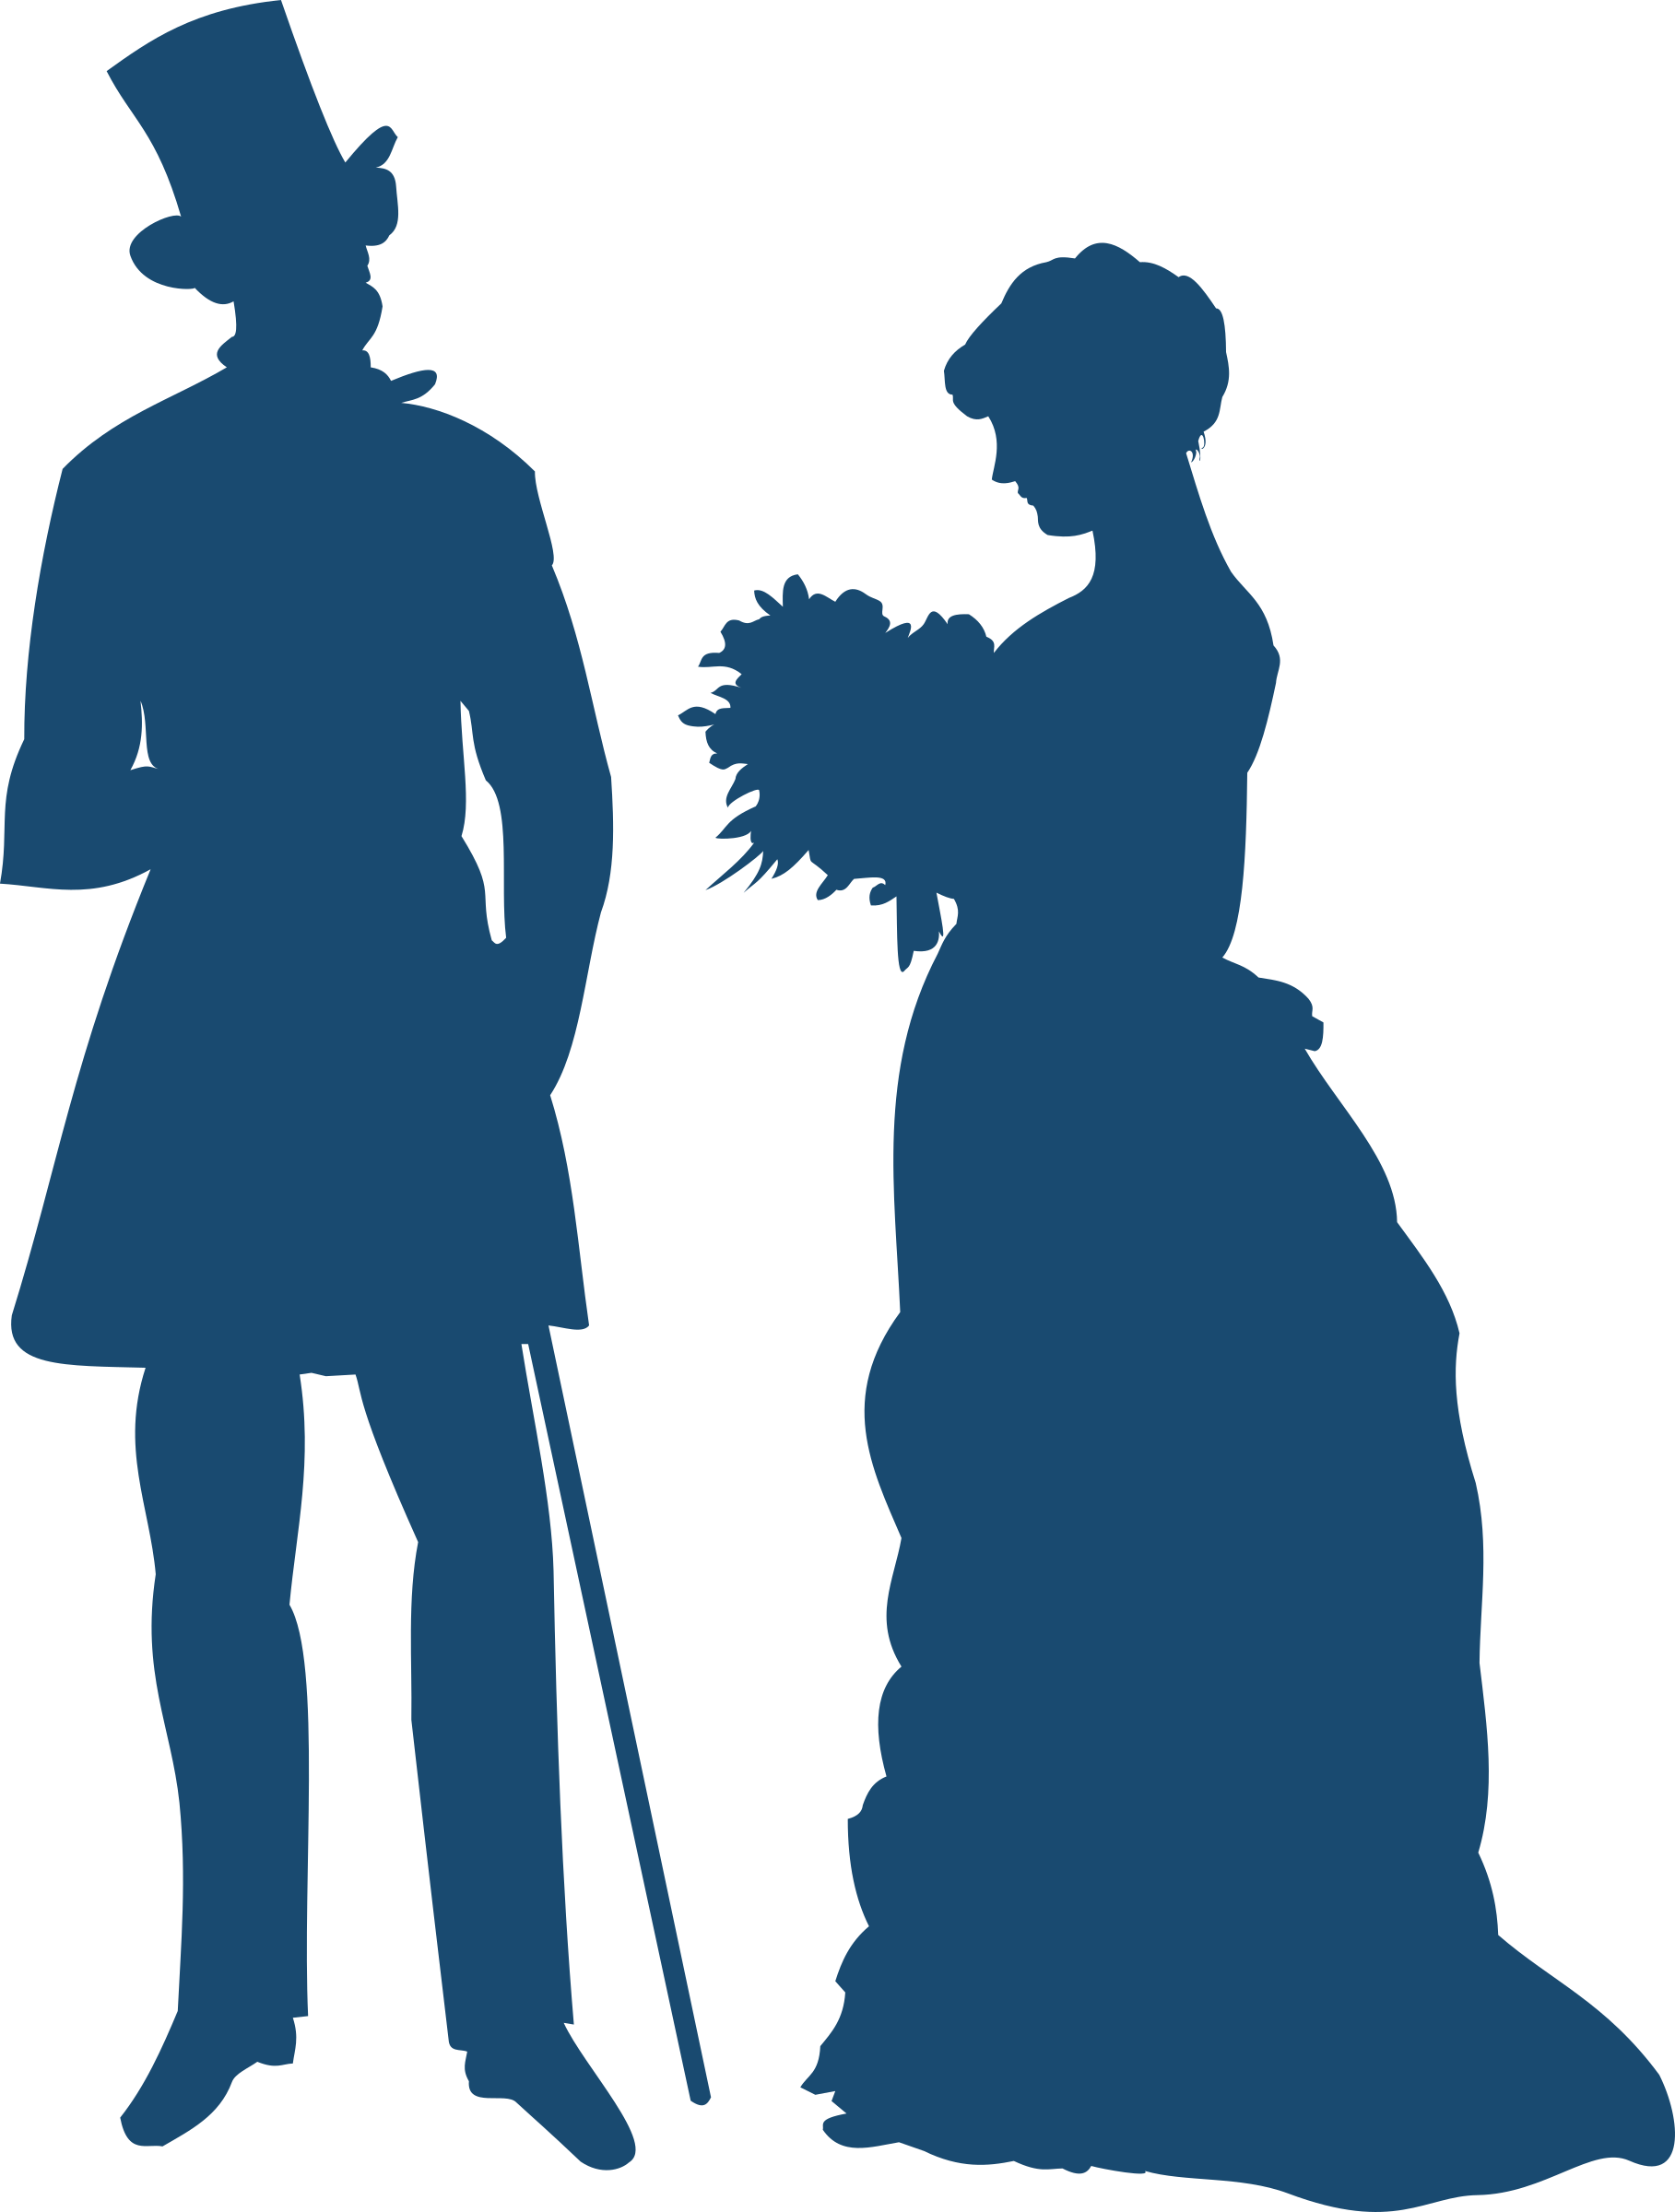 Couple by moini silhouettes. Clipart gun old fashioned